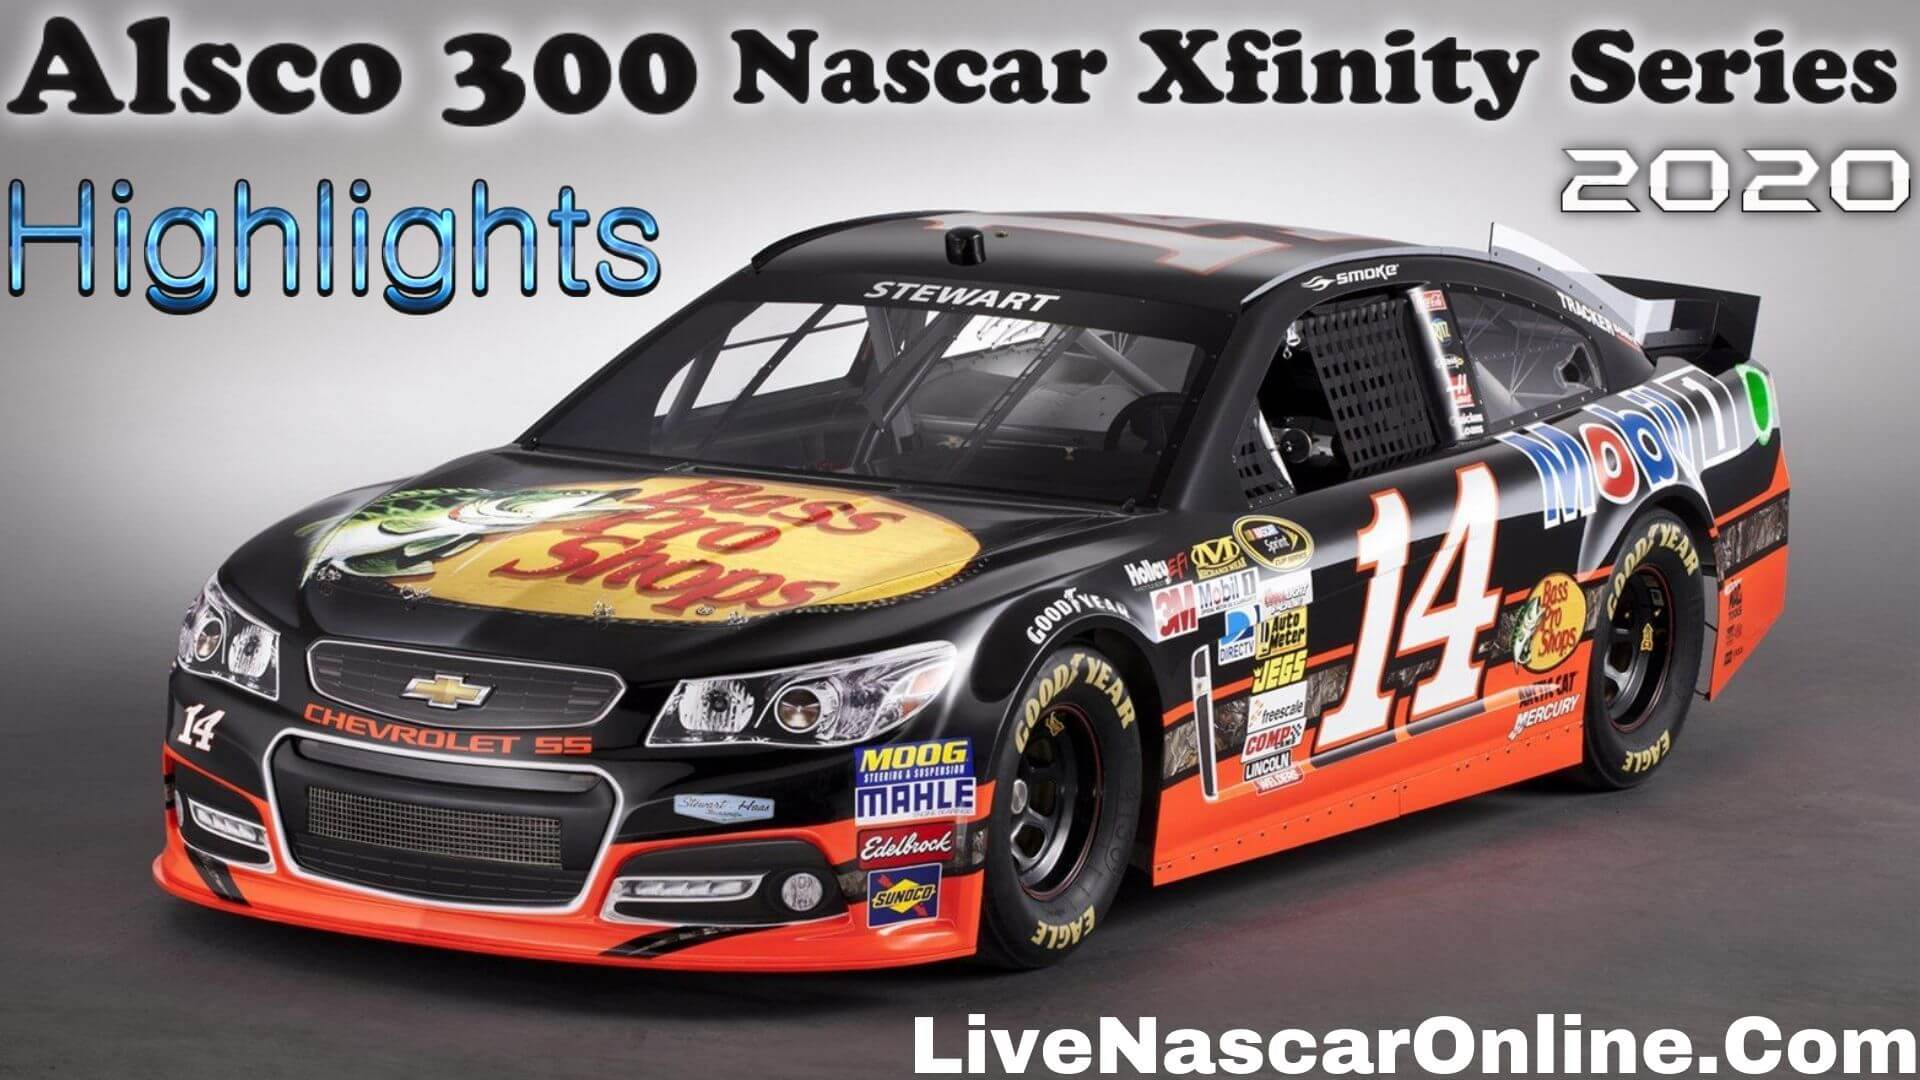 Nascar Alsco 300 Xfinity Series Highlights 2020